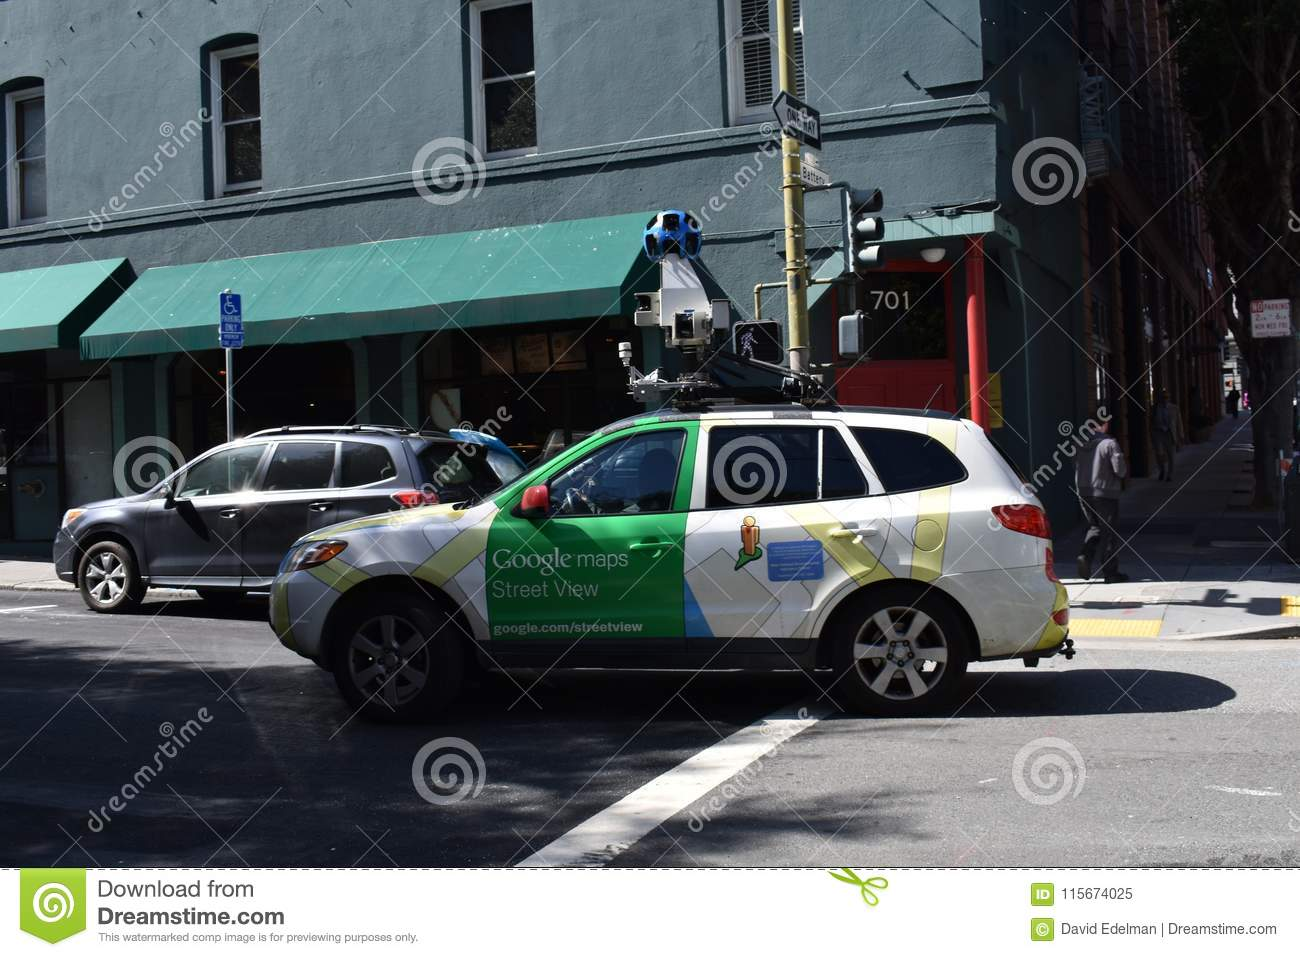 The Way Google`s Streetview Get Continuously Perfect Imagery